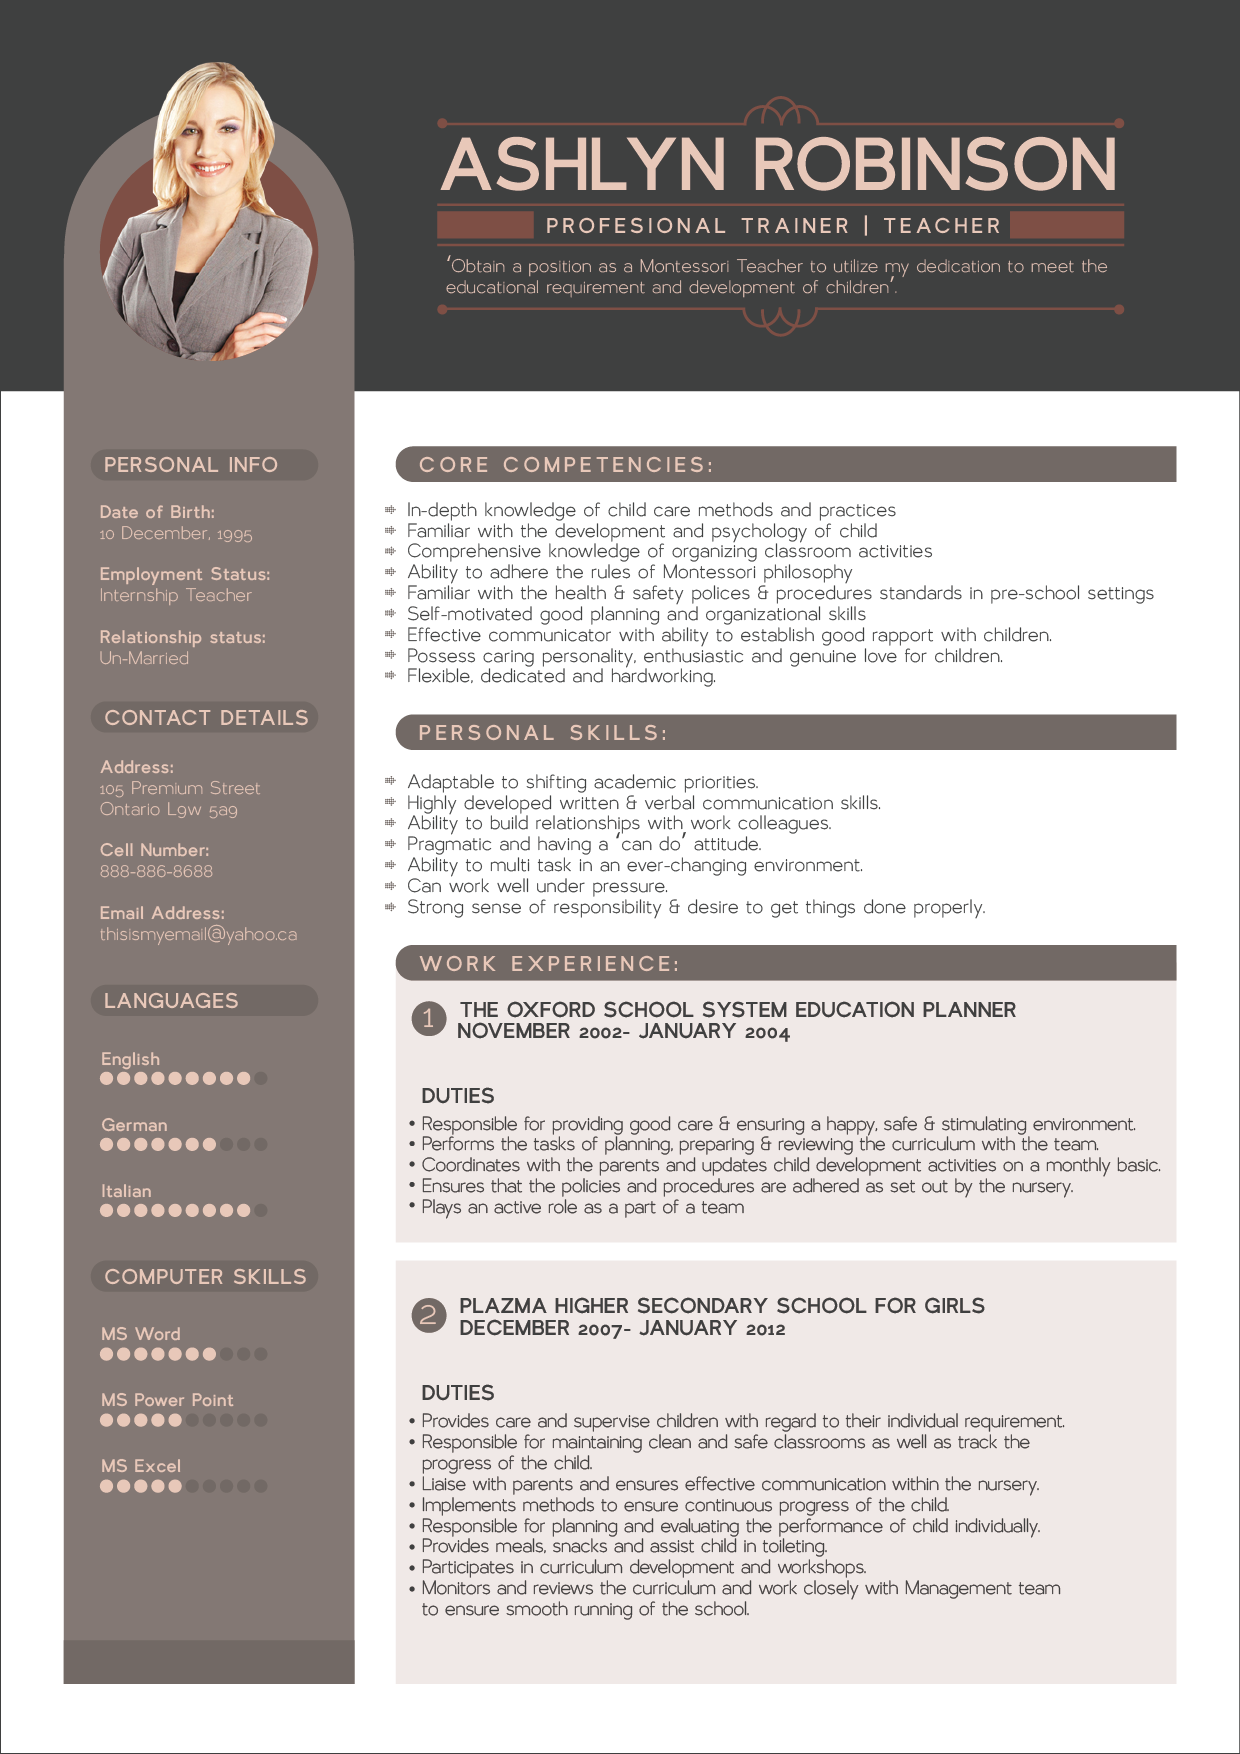 premium-professional-resume-template-for-females-01